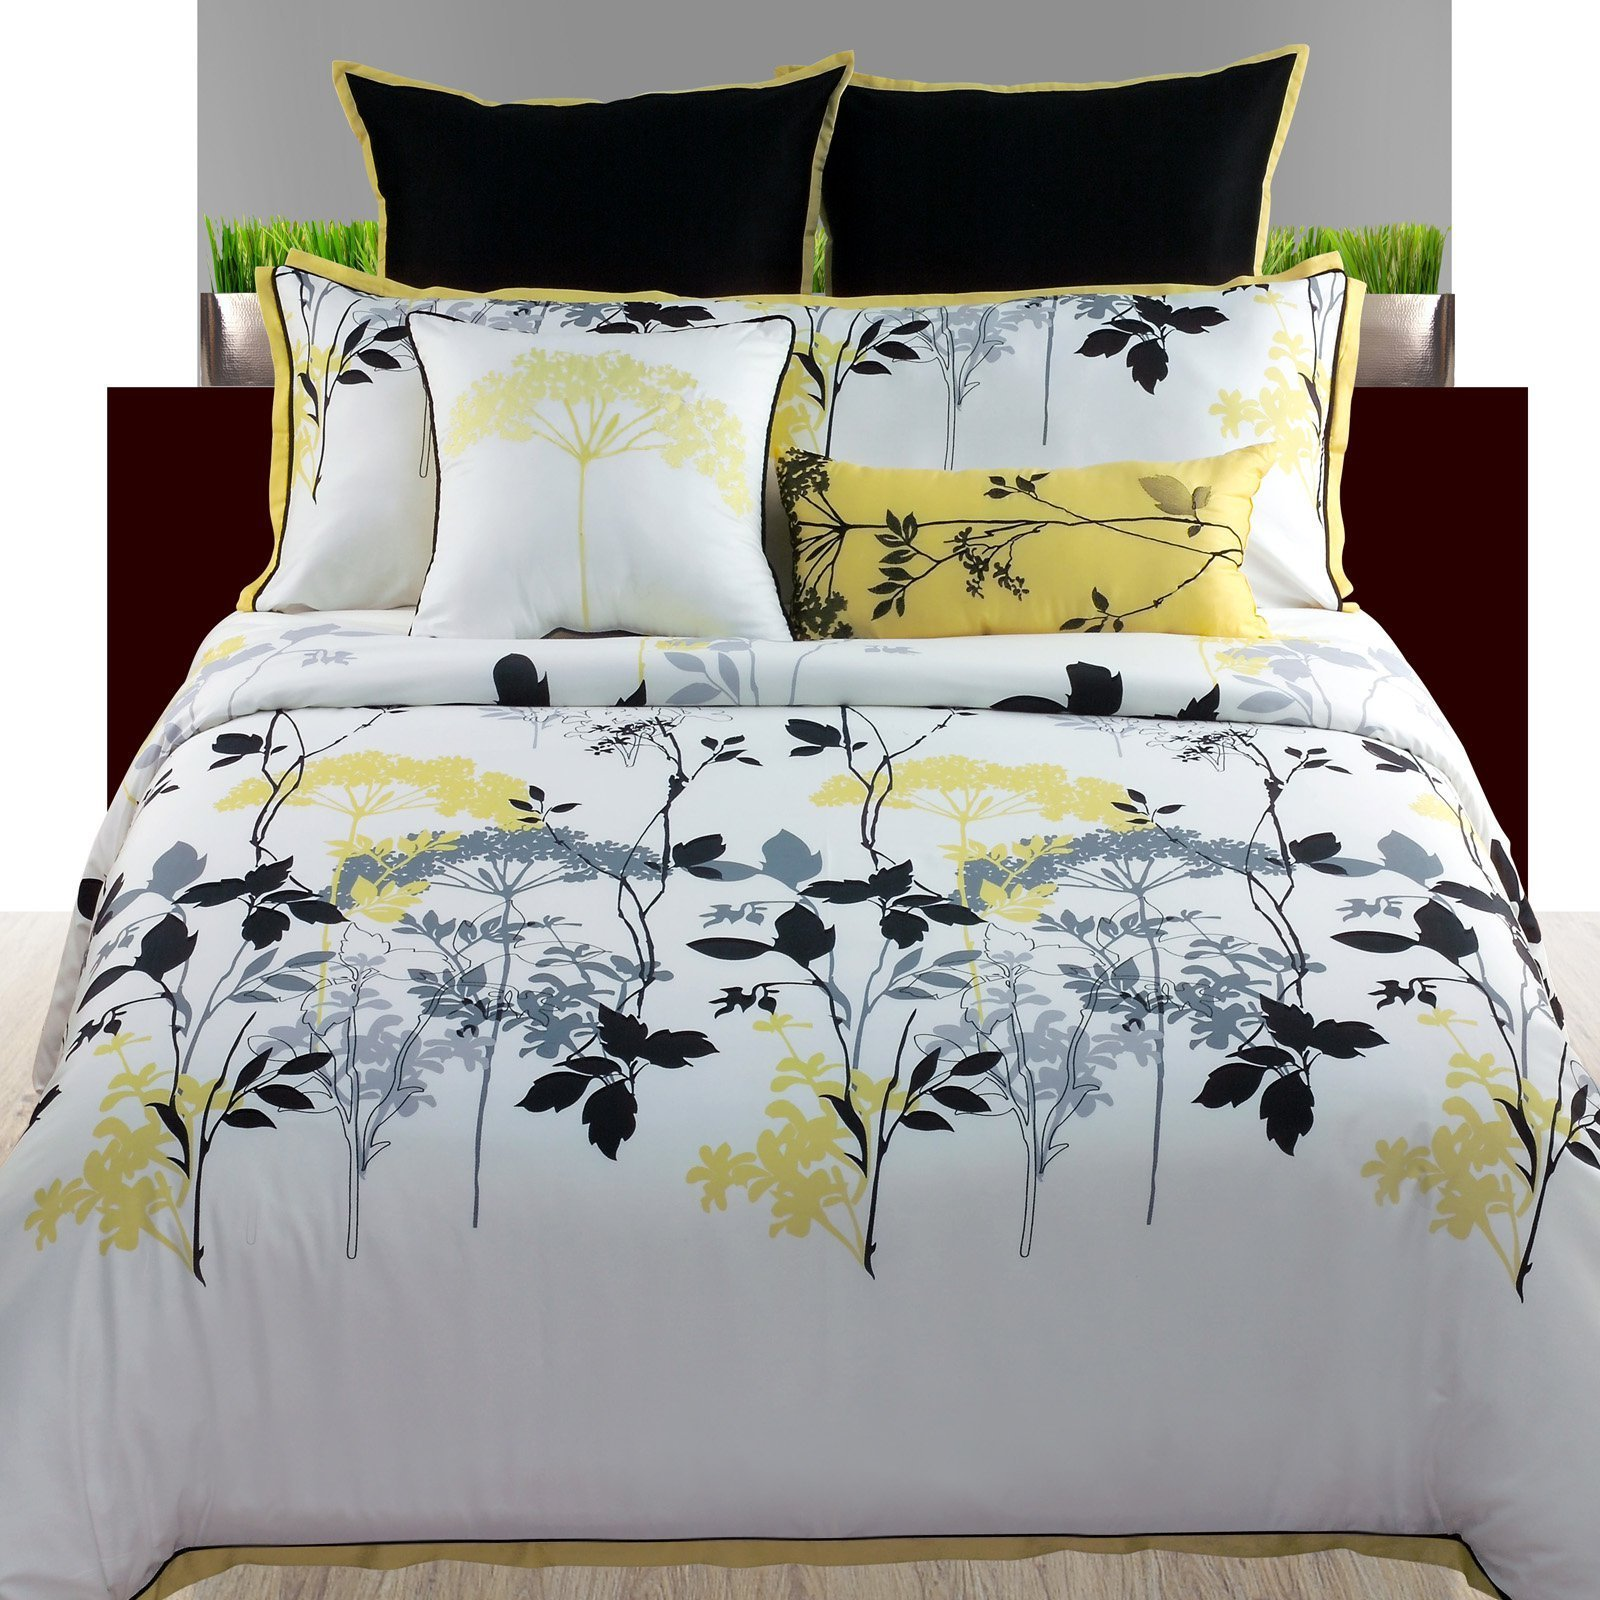 Best Angelo Home Gramercy Park Comforter Set At Hayneedle With Pictures